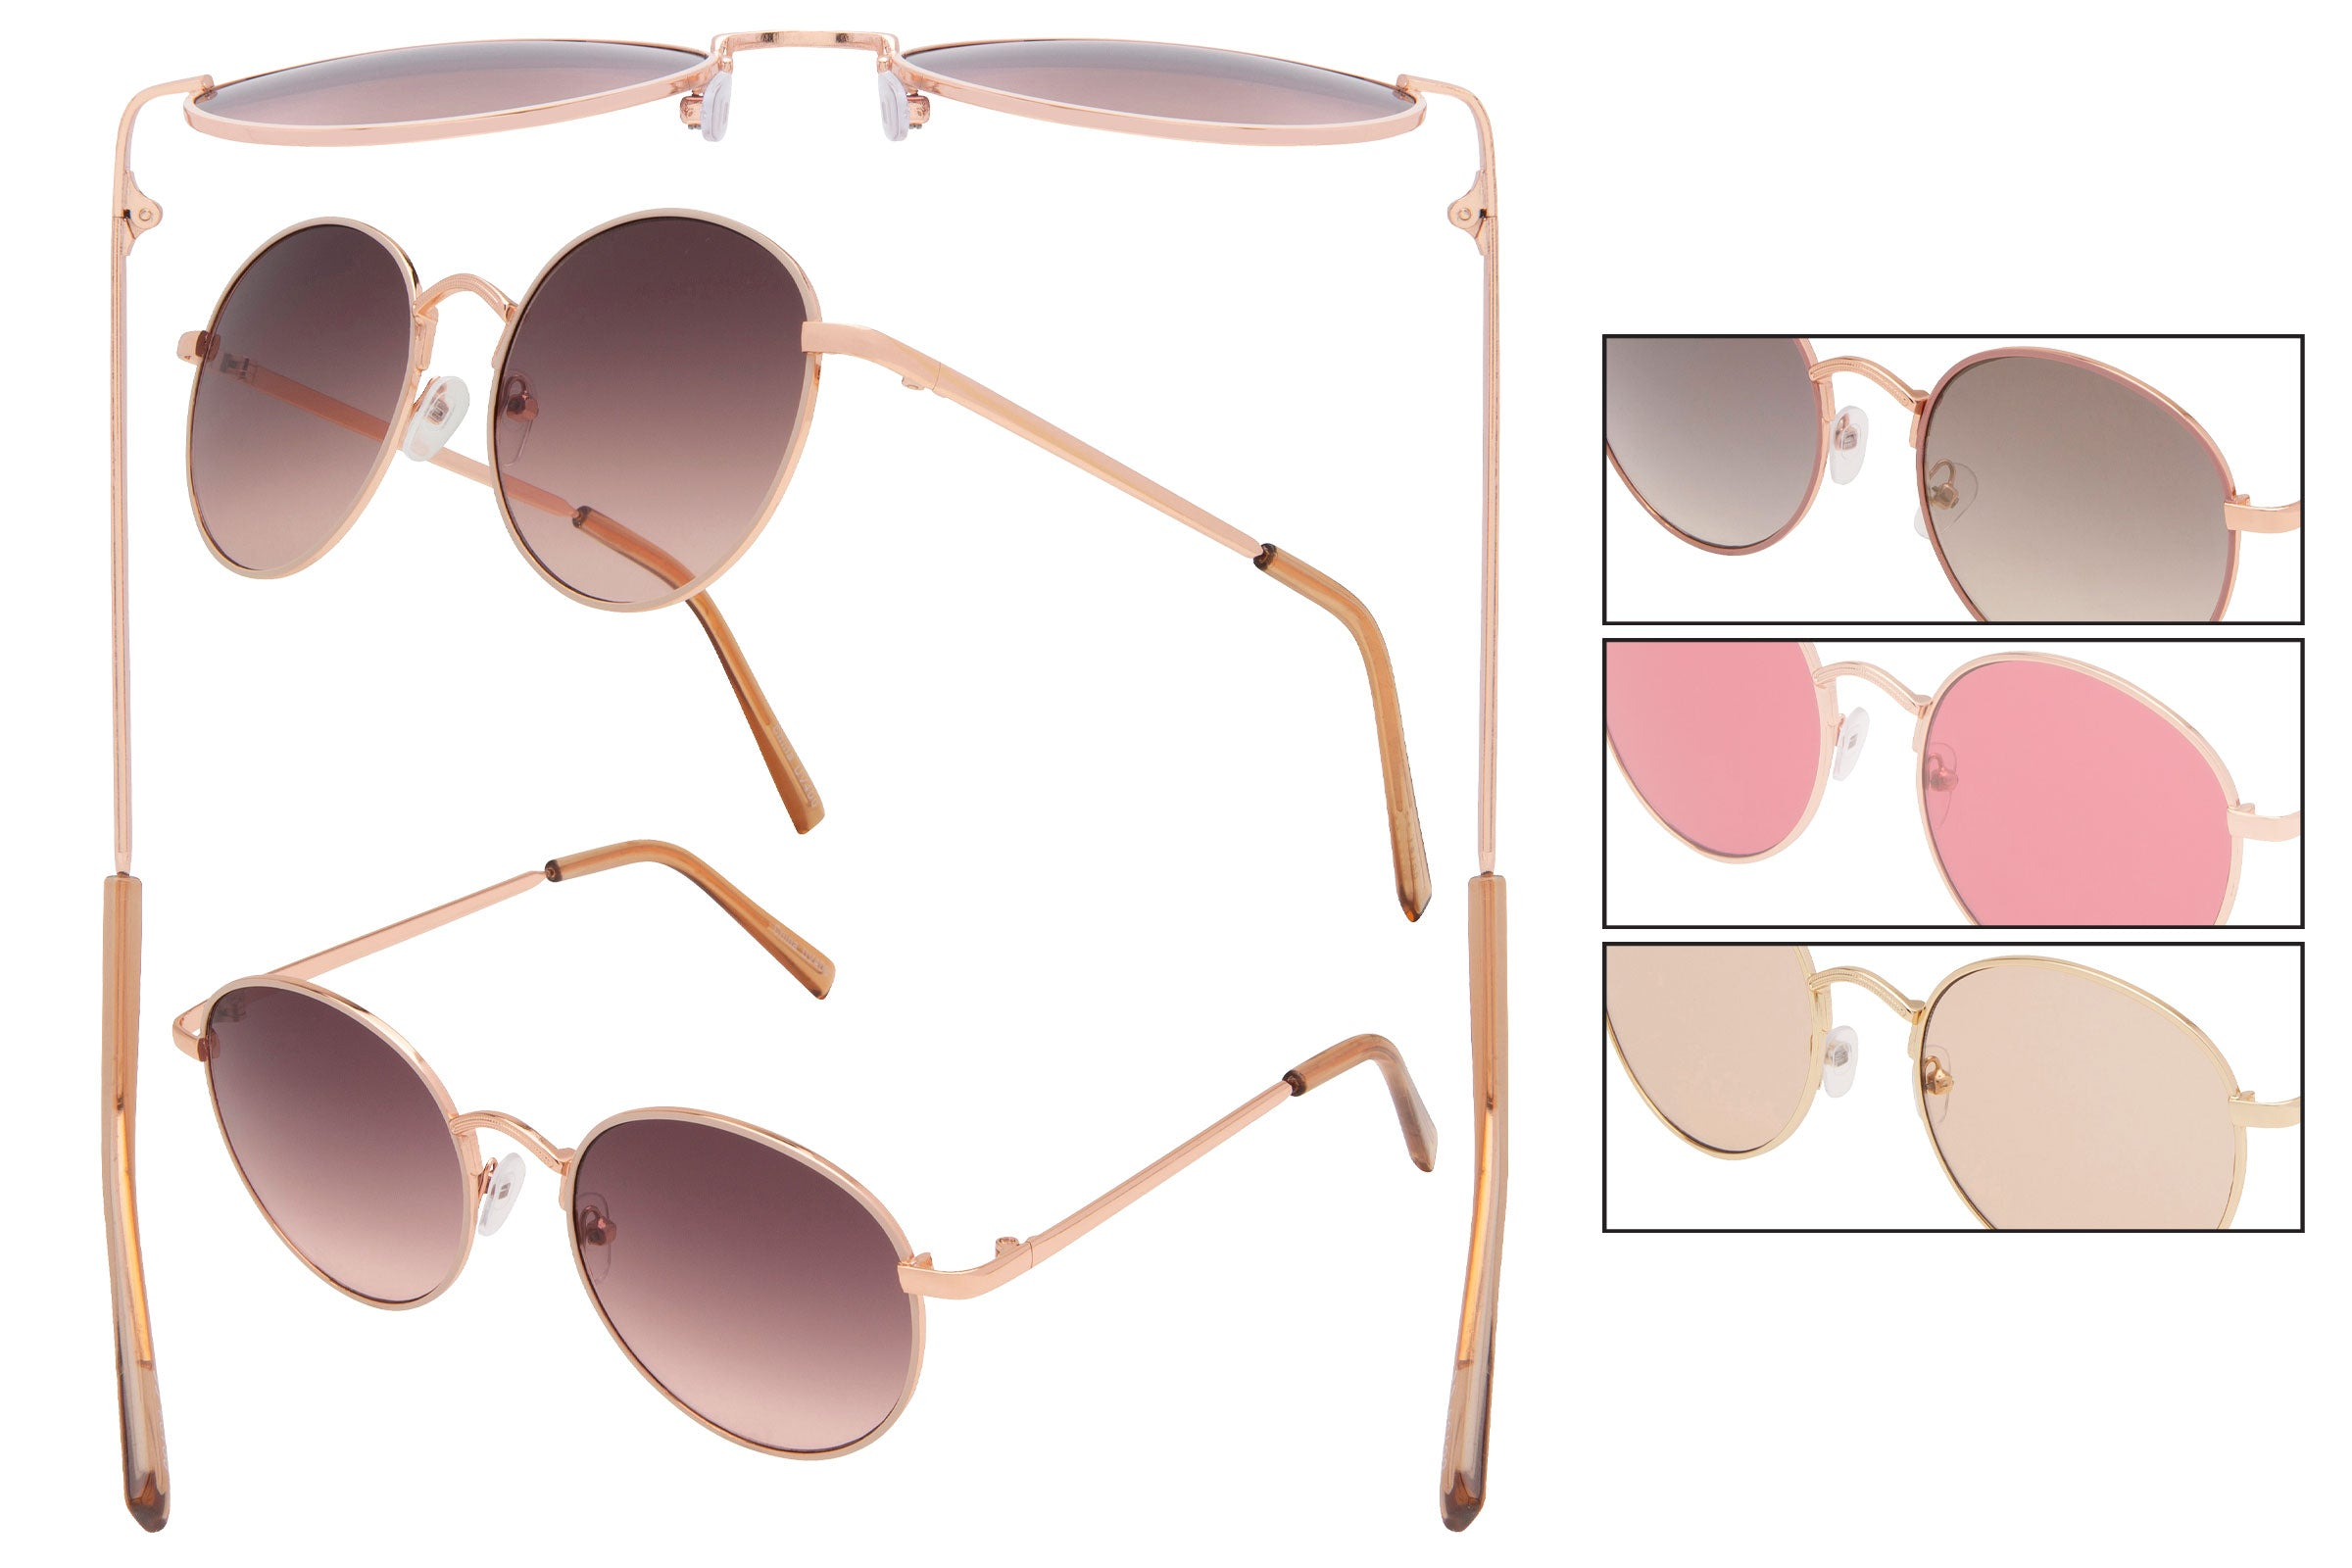 66154 - Vox Retro Metal Sunglasses